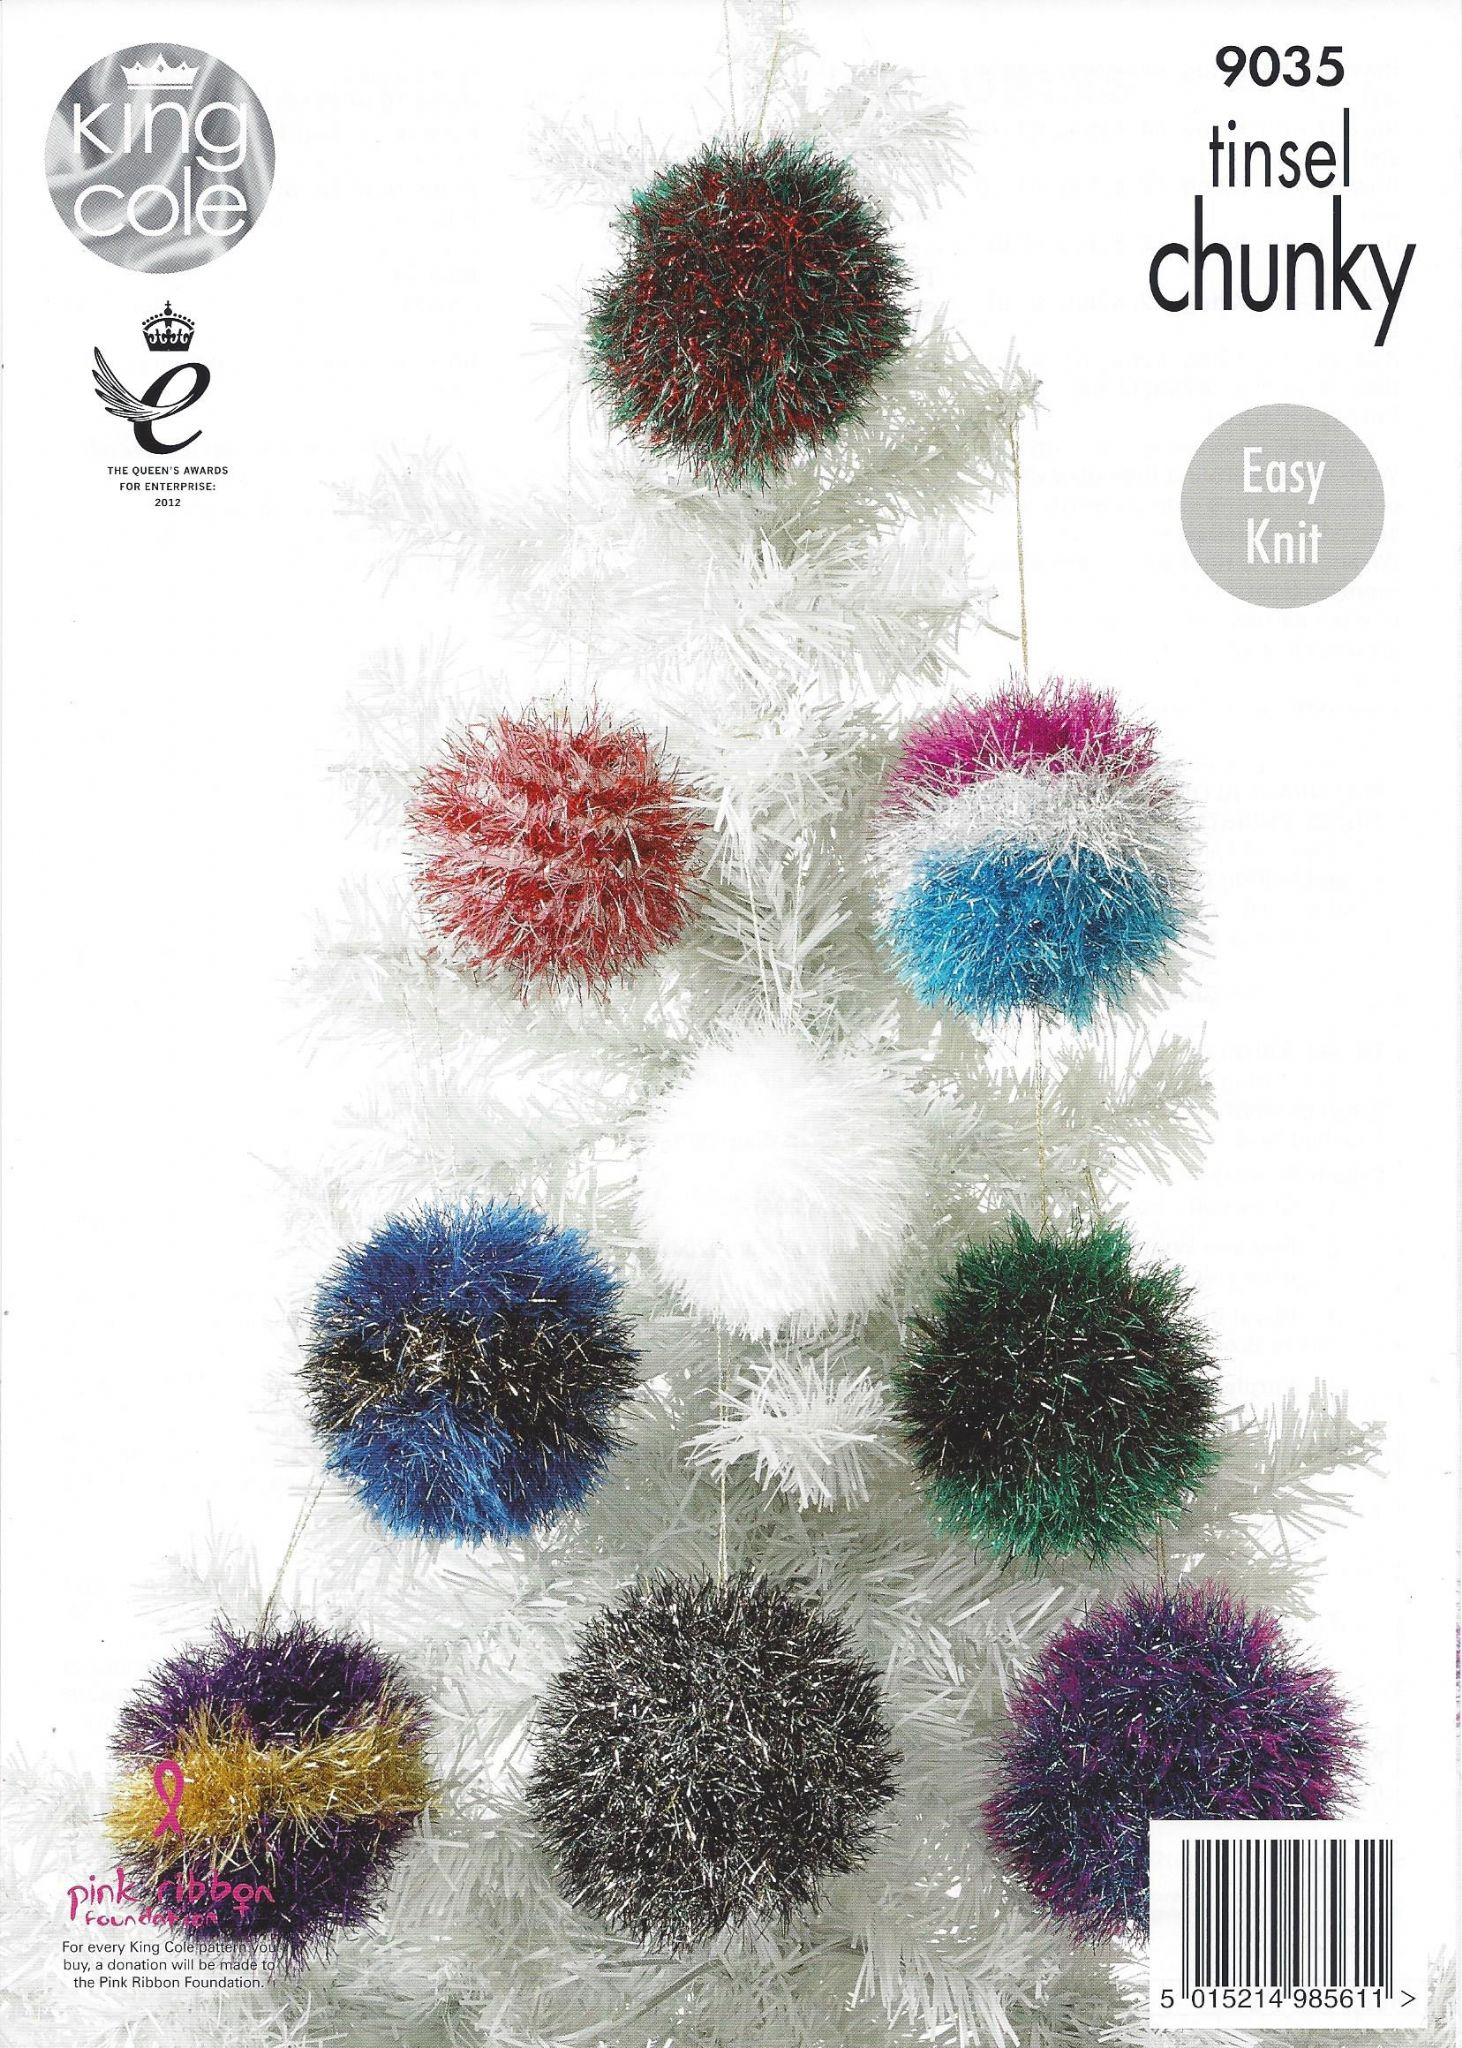 Knitting Patterns For King Cole Tinsel : King Cole Tinsel Chunky - 9035 Tinsel Christmas Trees and Baubles Knitting Pa...